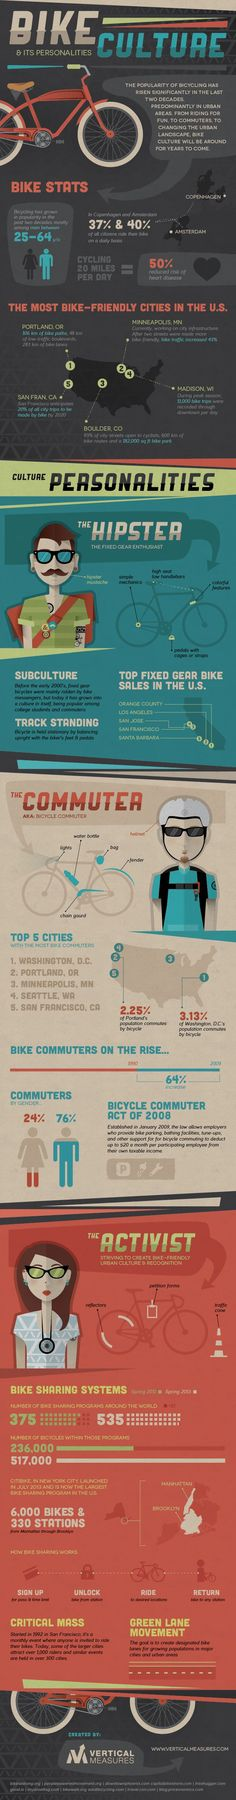 Bike Culture & Its Personalities [INFOGRAPHIC]